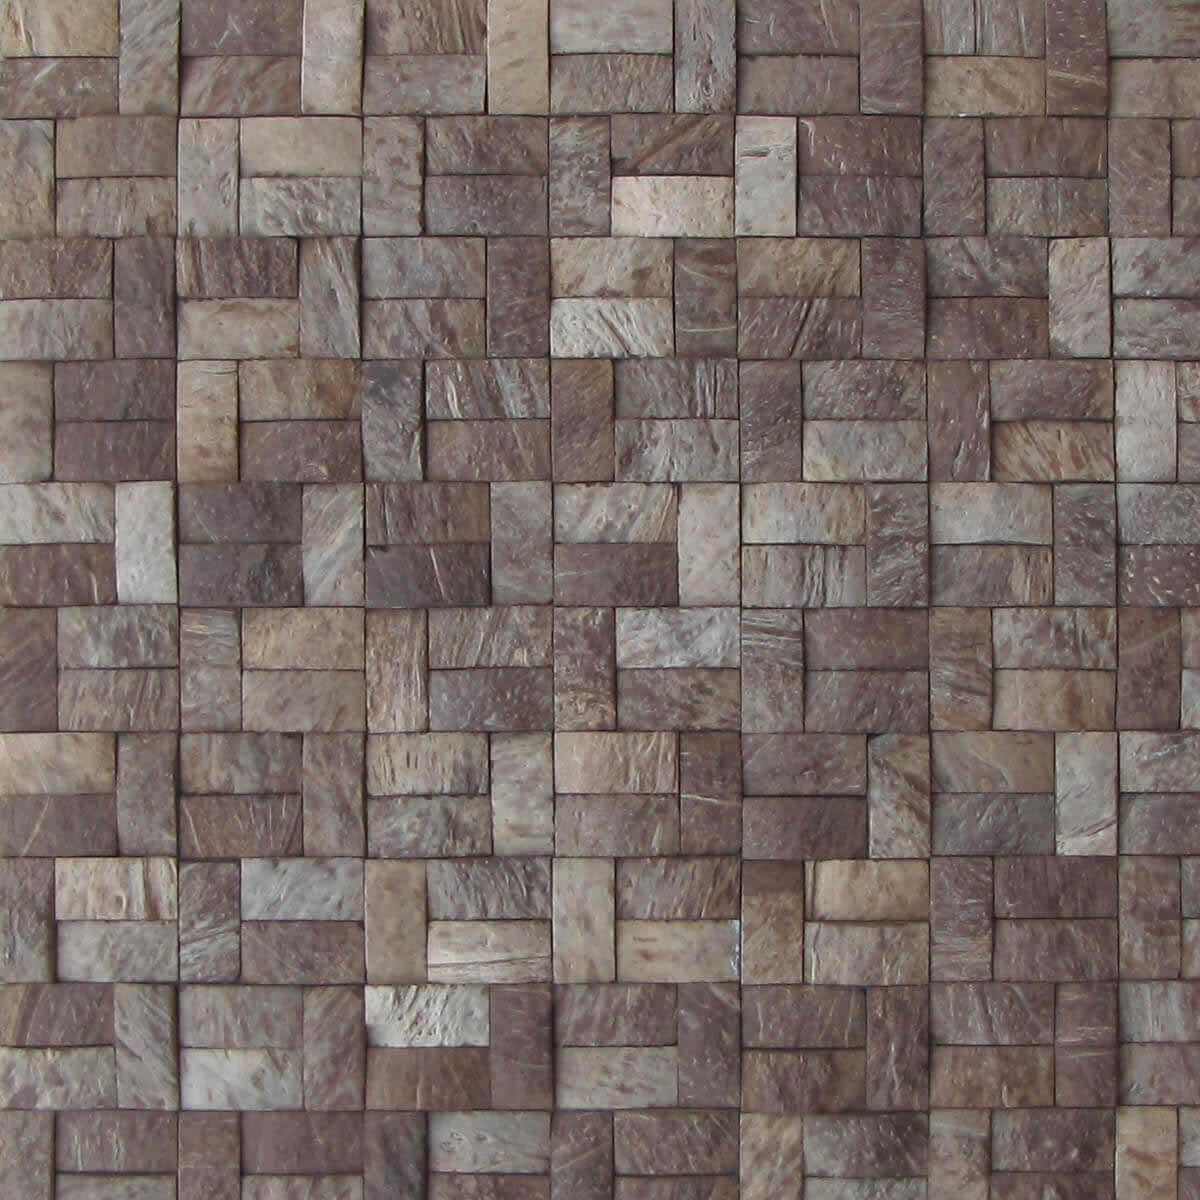 Coconut Shell Tiles